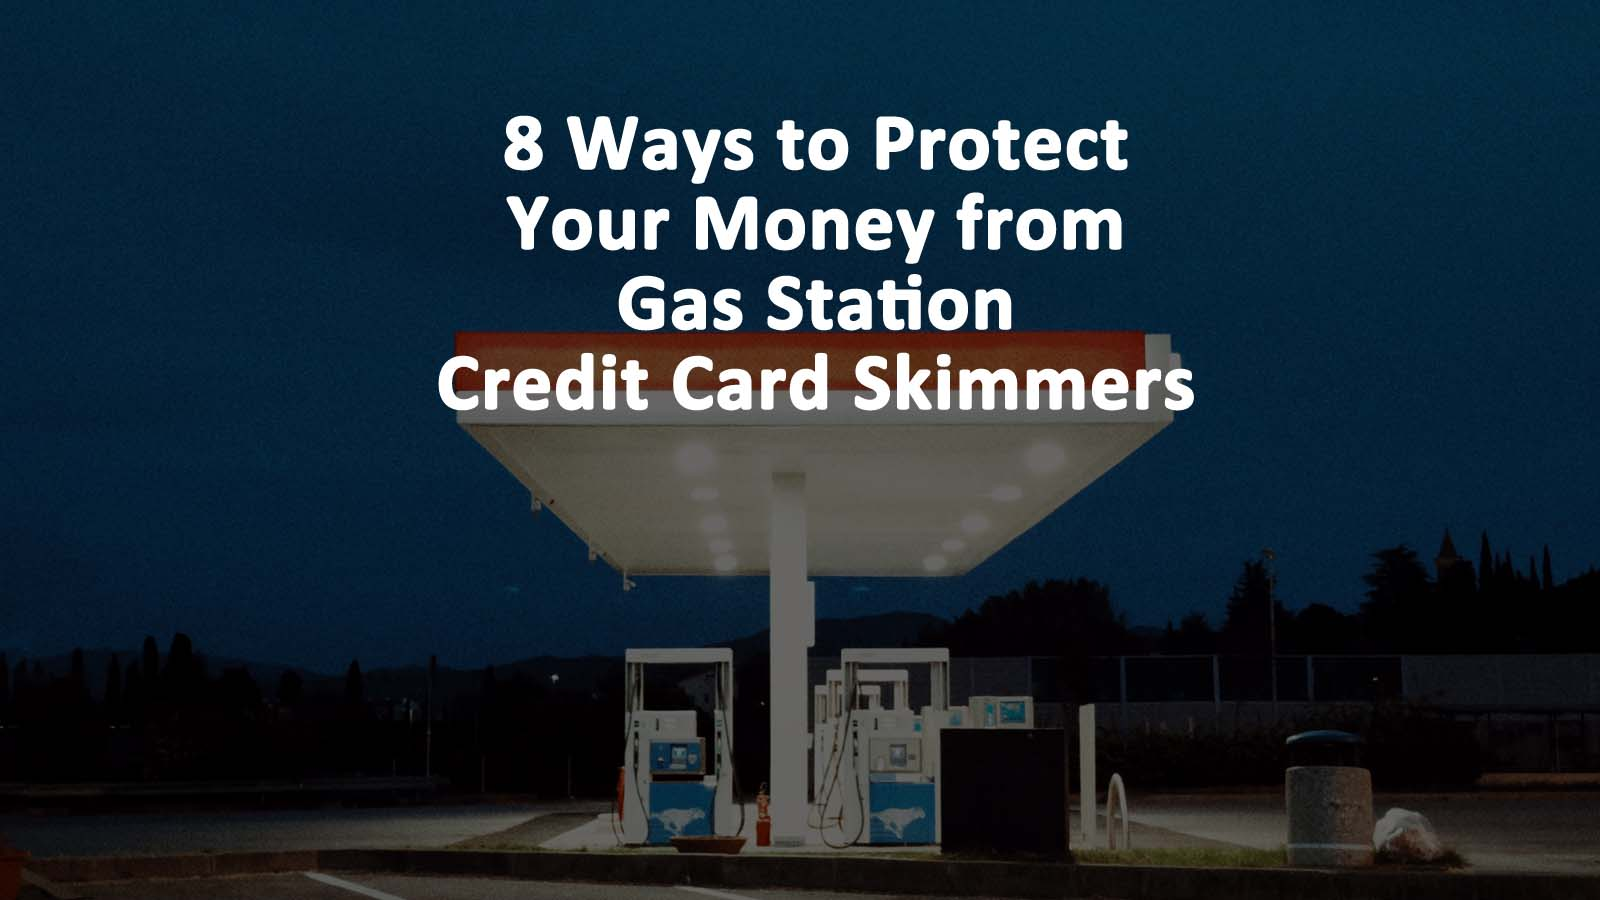 Gas Station Credit Card Skimmers